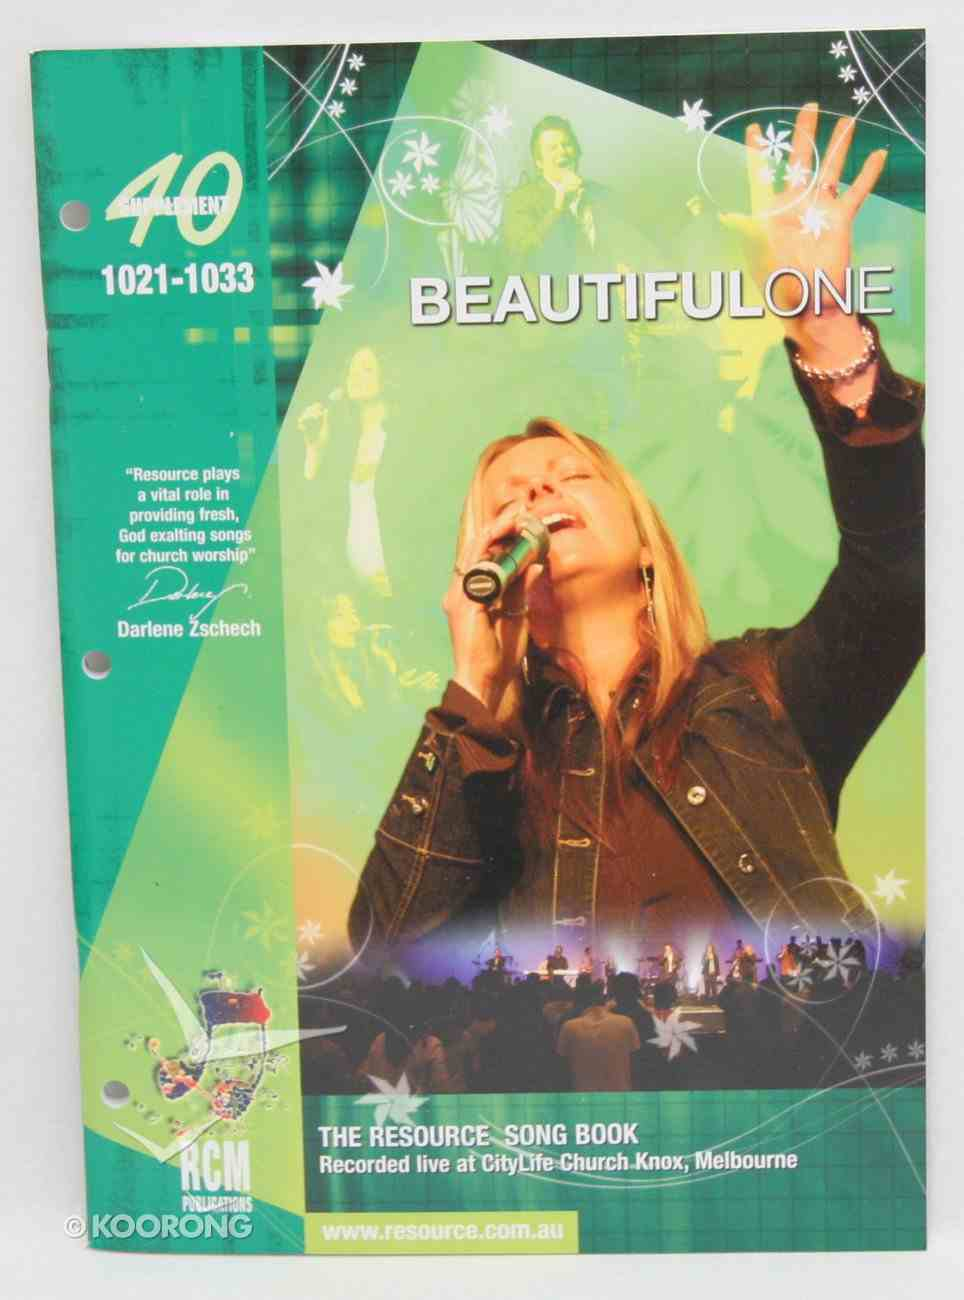 Rcm Volume G: Supplement 40 Beautiful One (Music Book) (1021-1033) Paperback